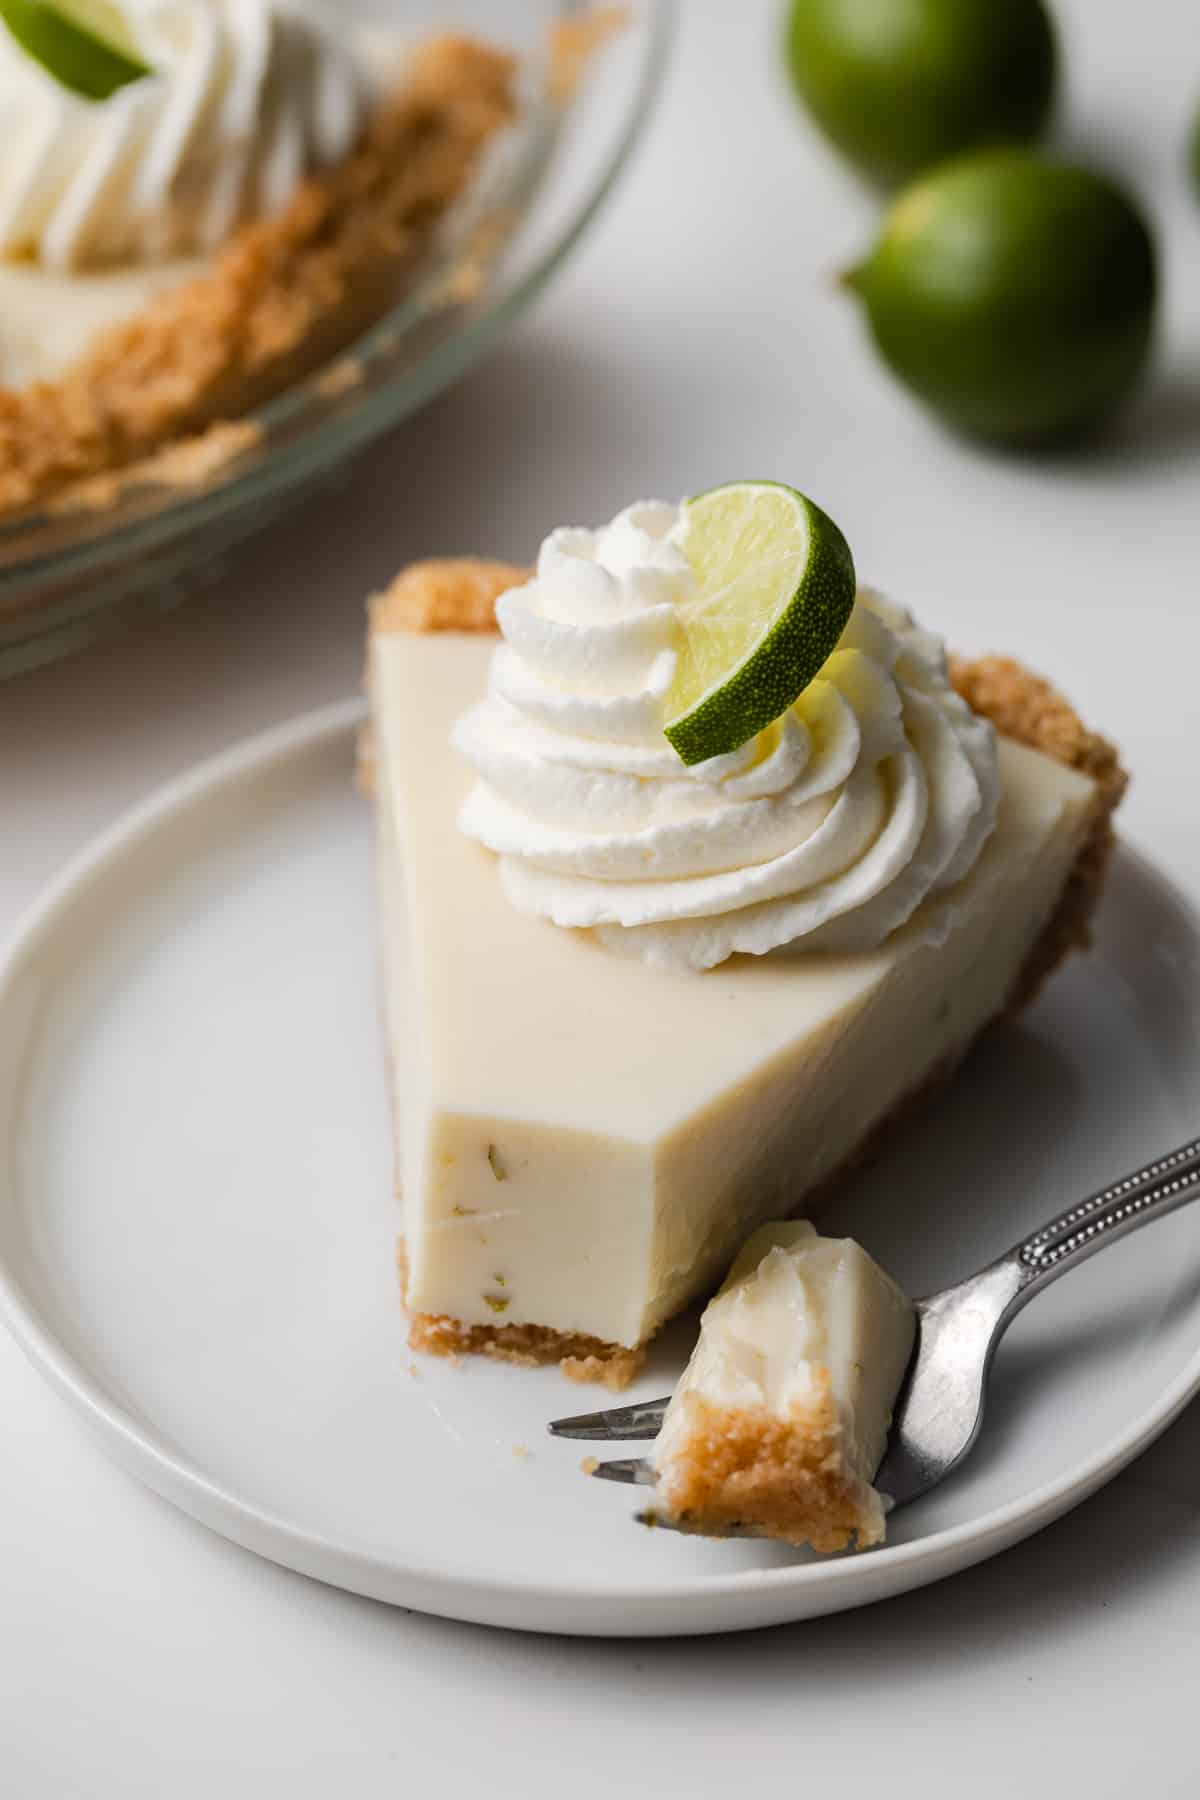 angled view of slice of key lime pie with fork taking a bite out